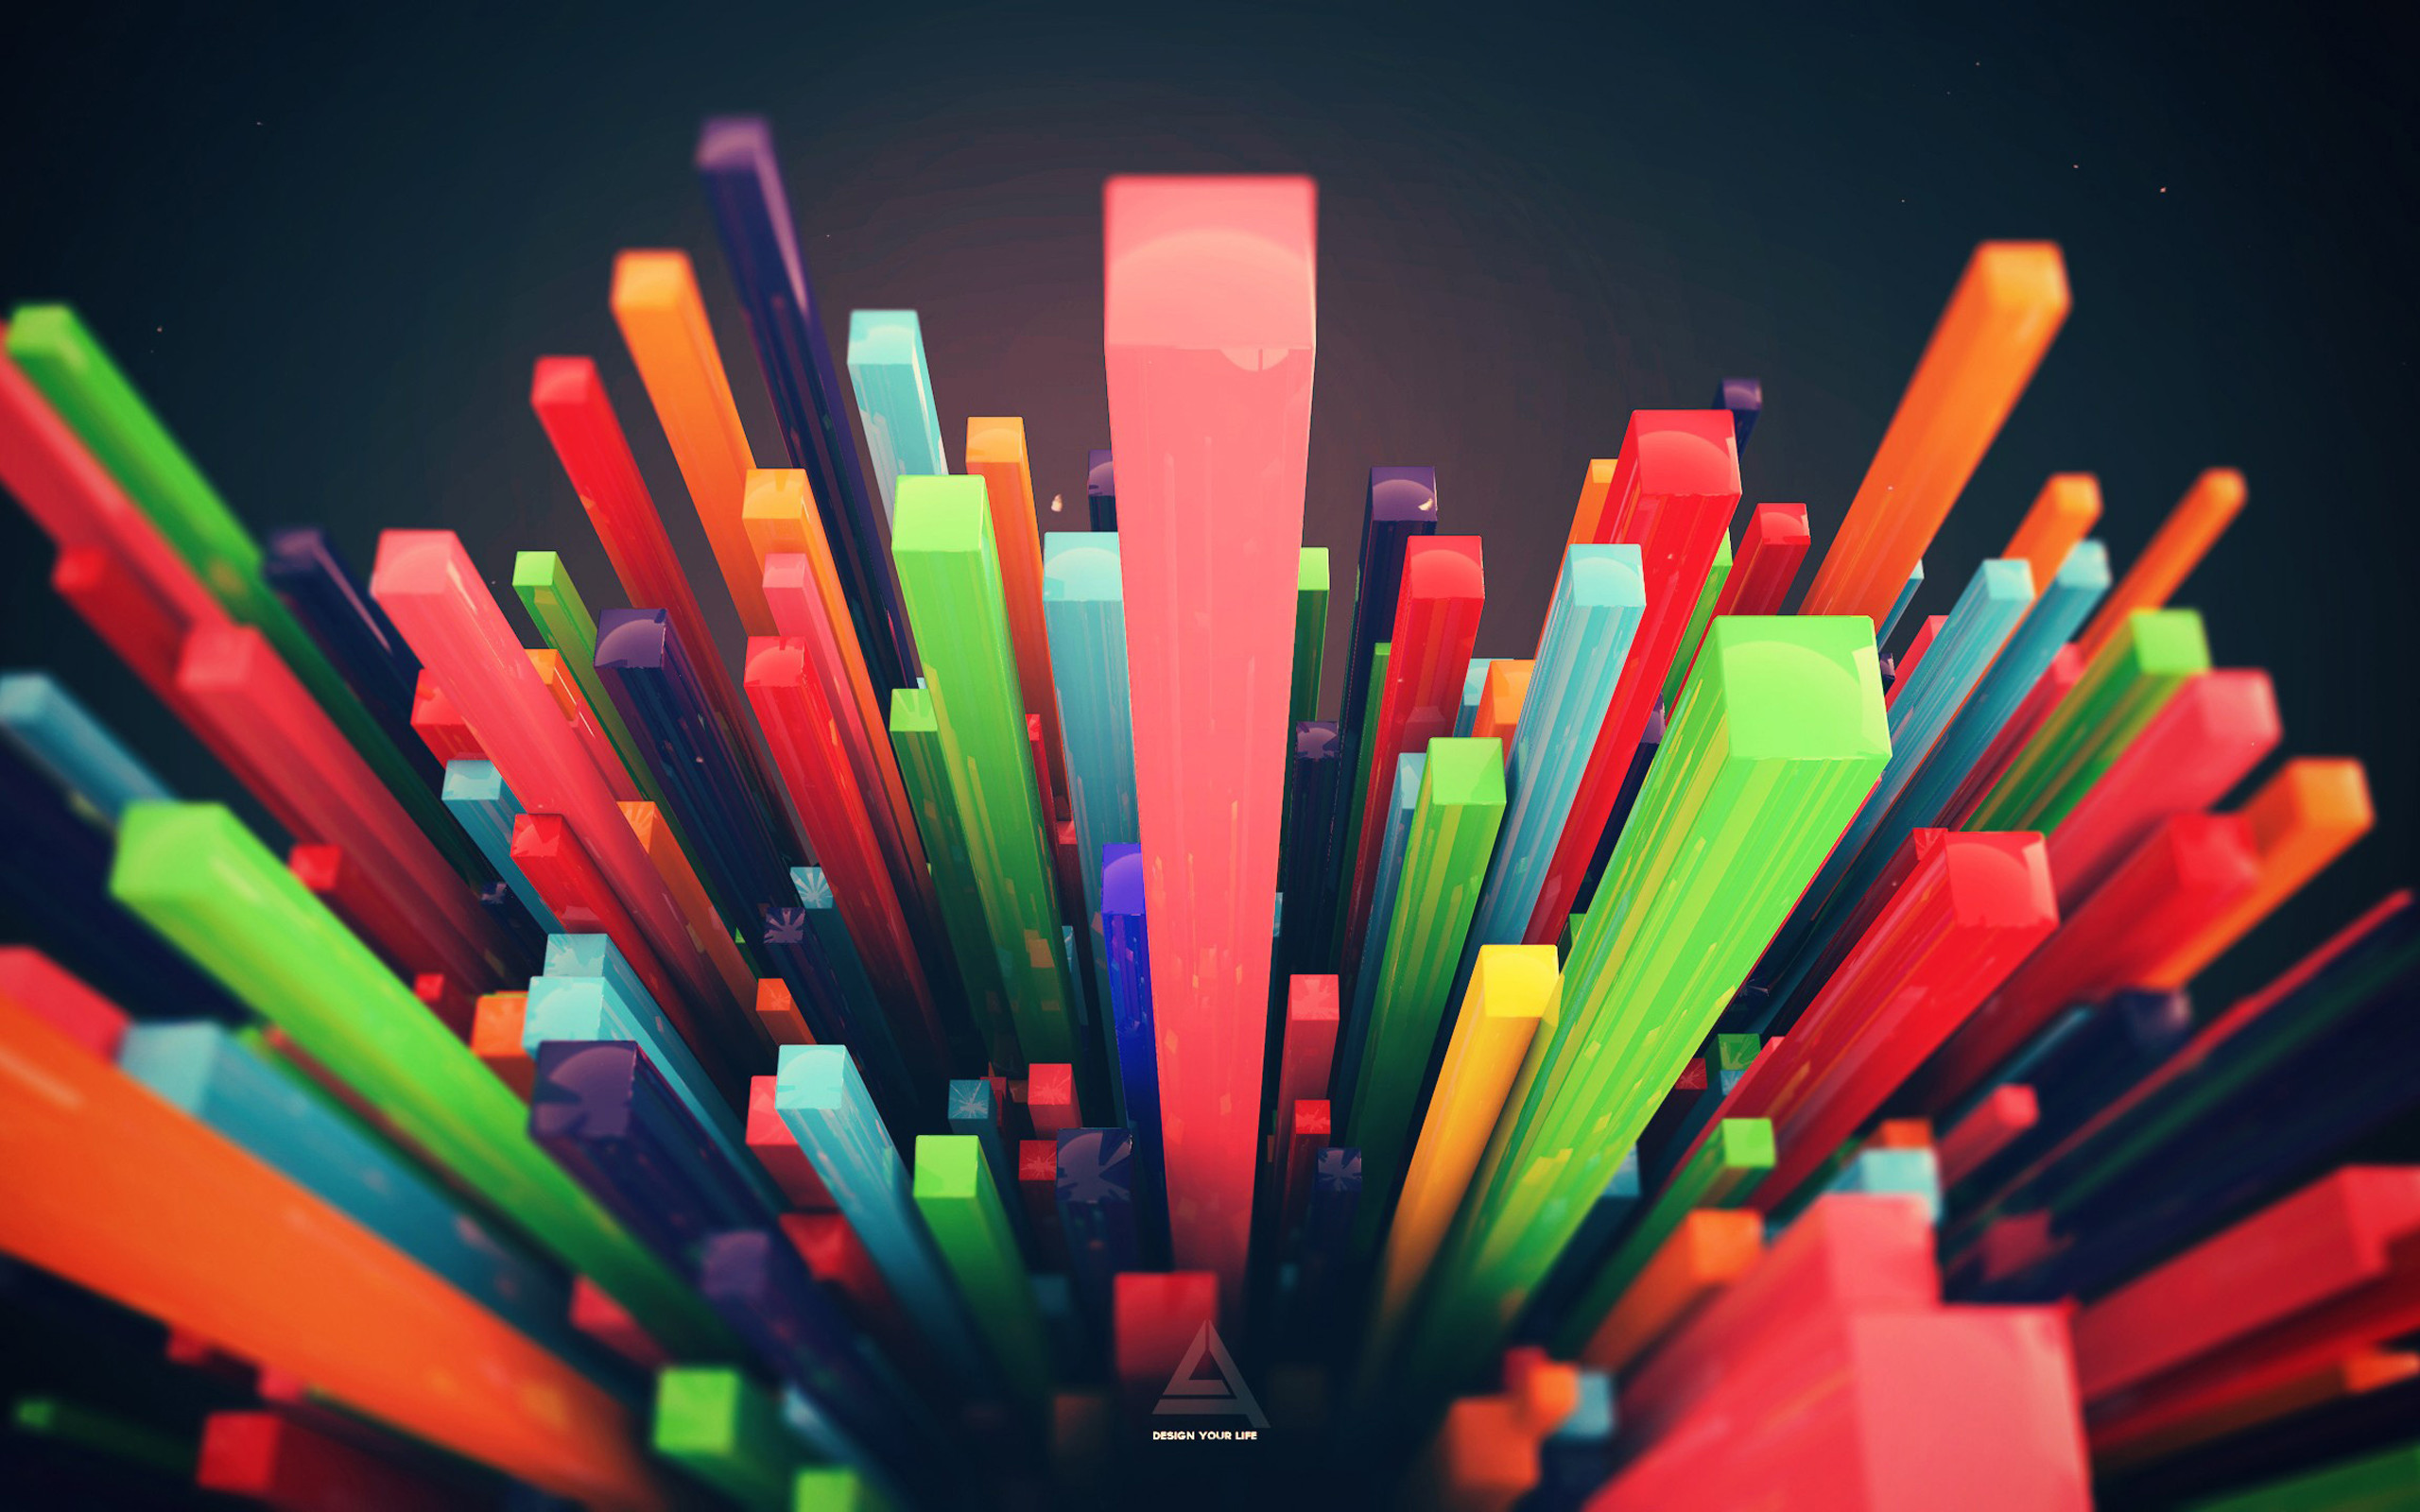 2560x1600 3 Dimensional Art Abstract wallpaper | All Size ... align=center>